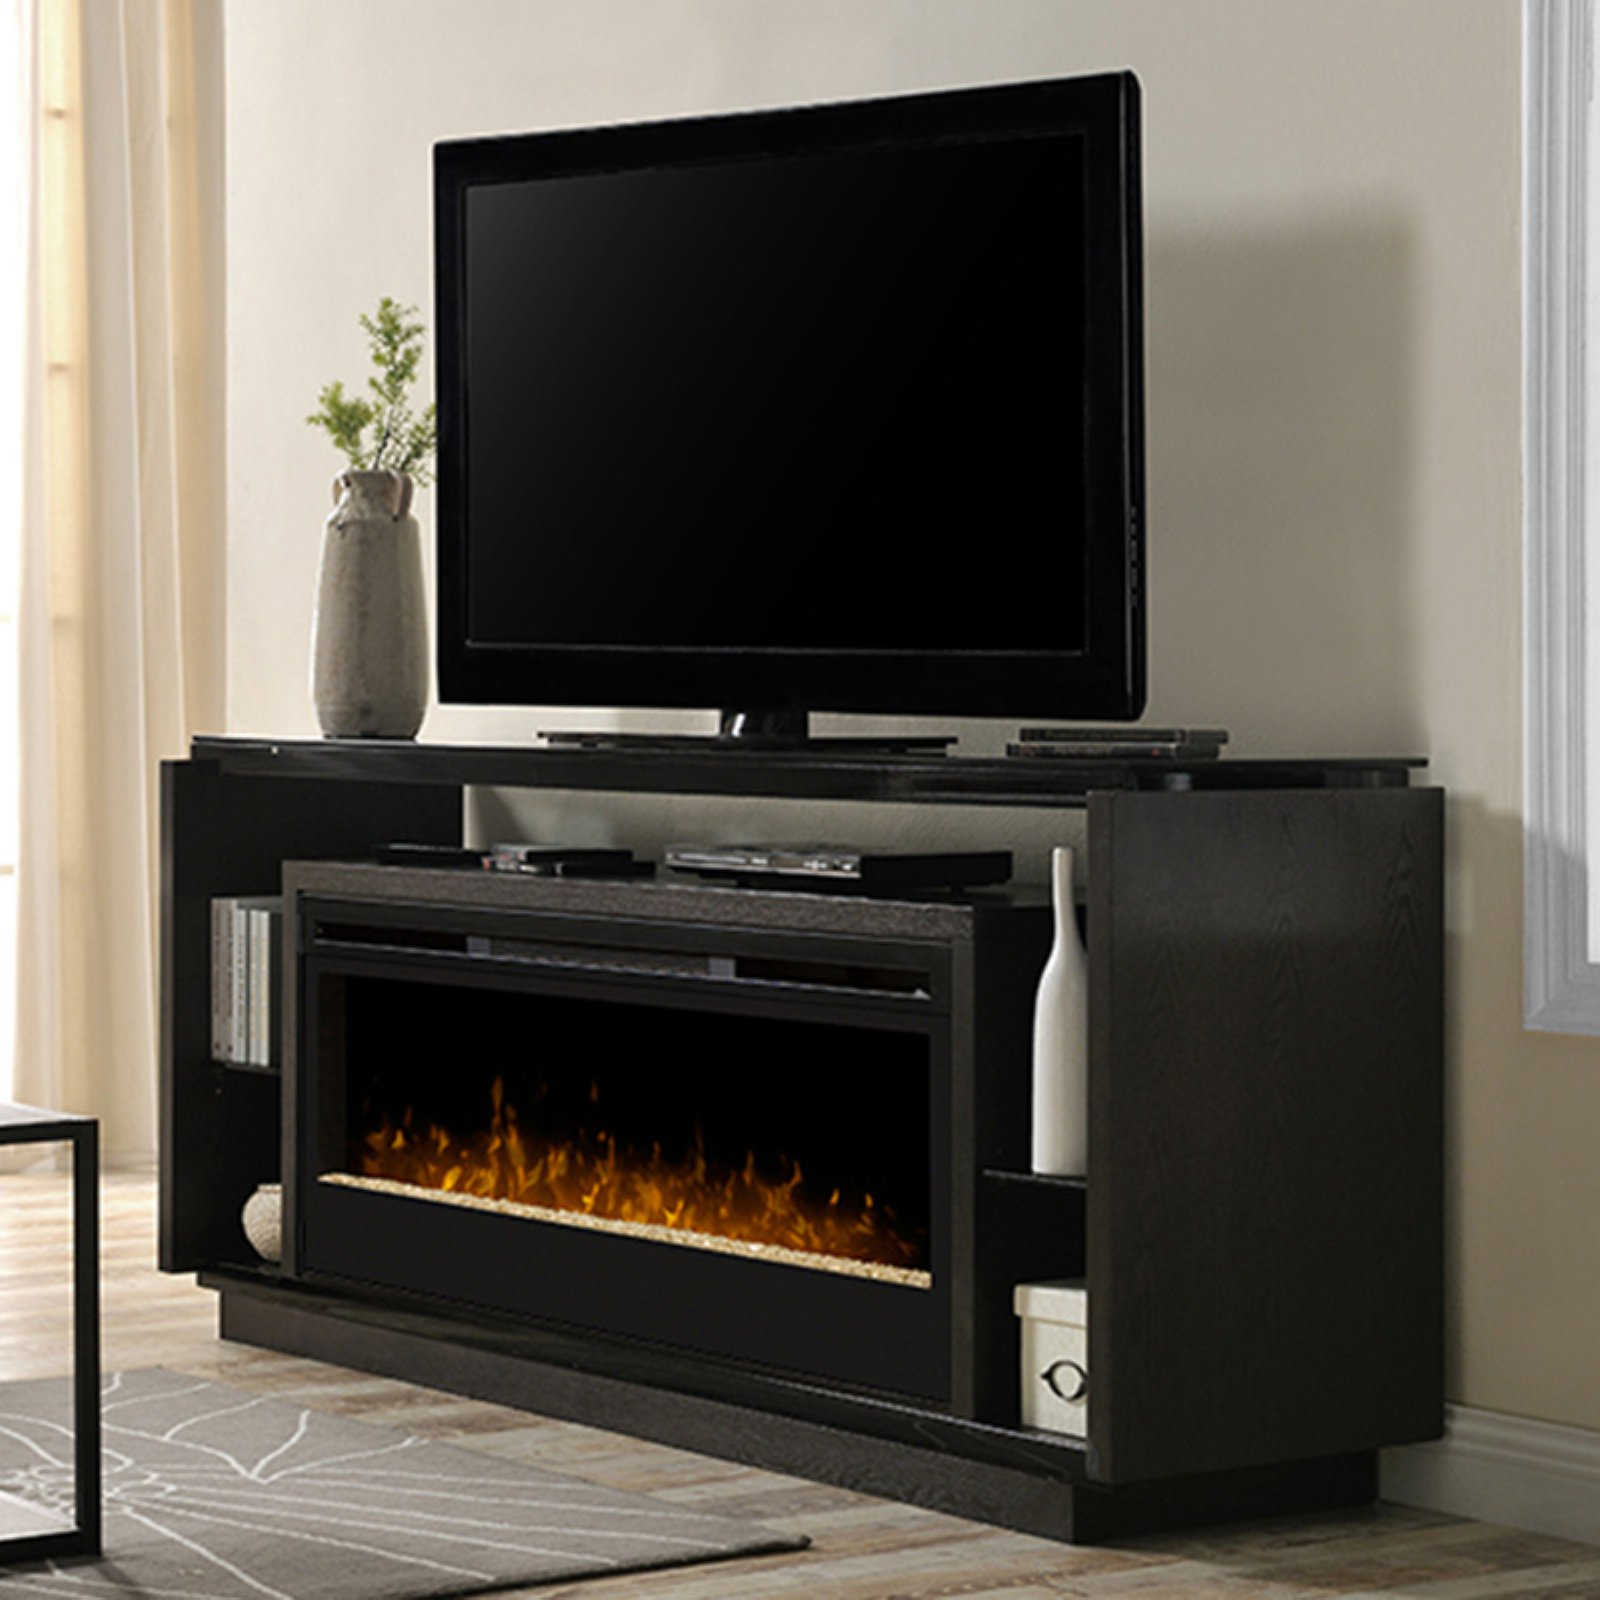 Dimplex David Media Console with Electric Fireplace